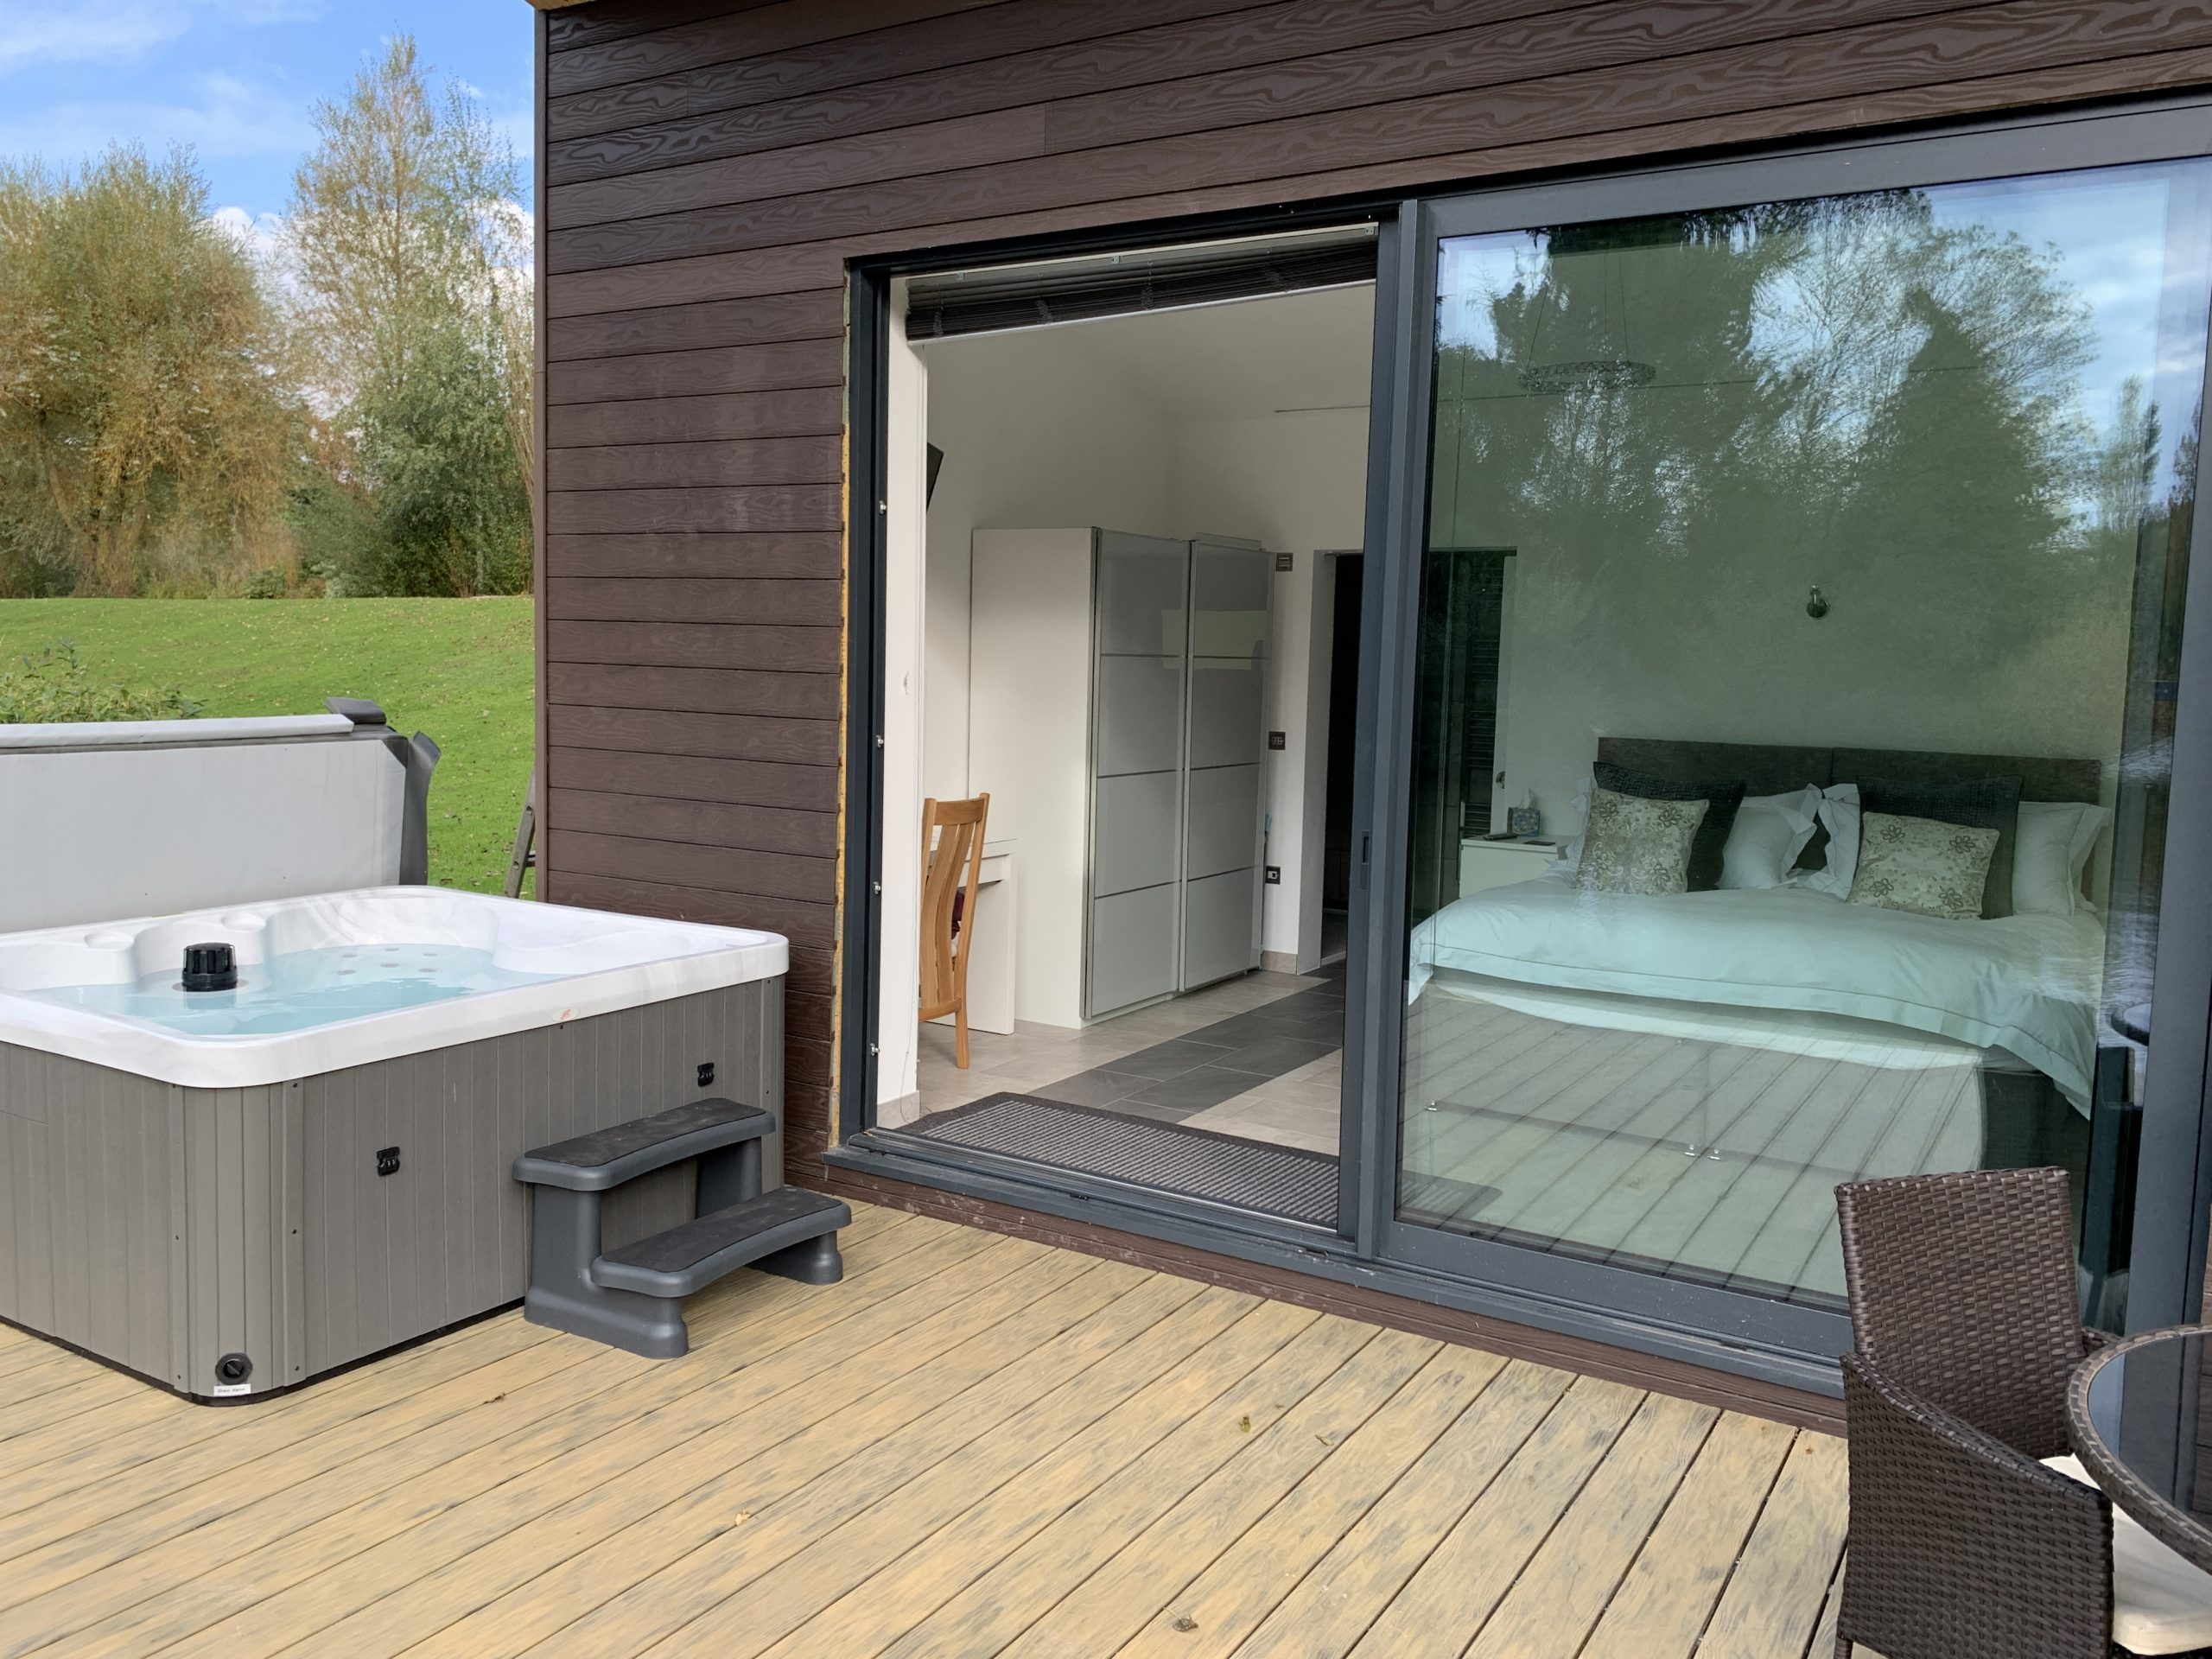 Enjoy your private hot tub in tranquil surroundings